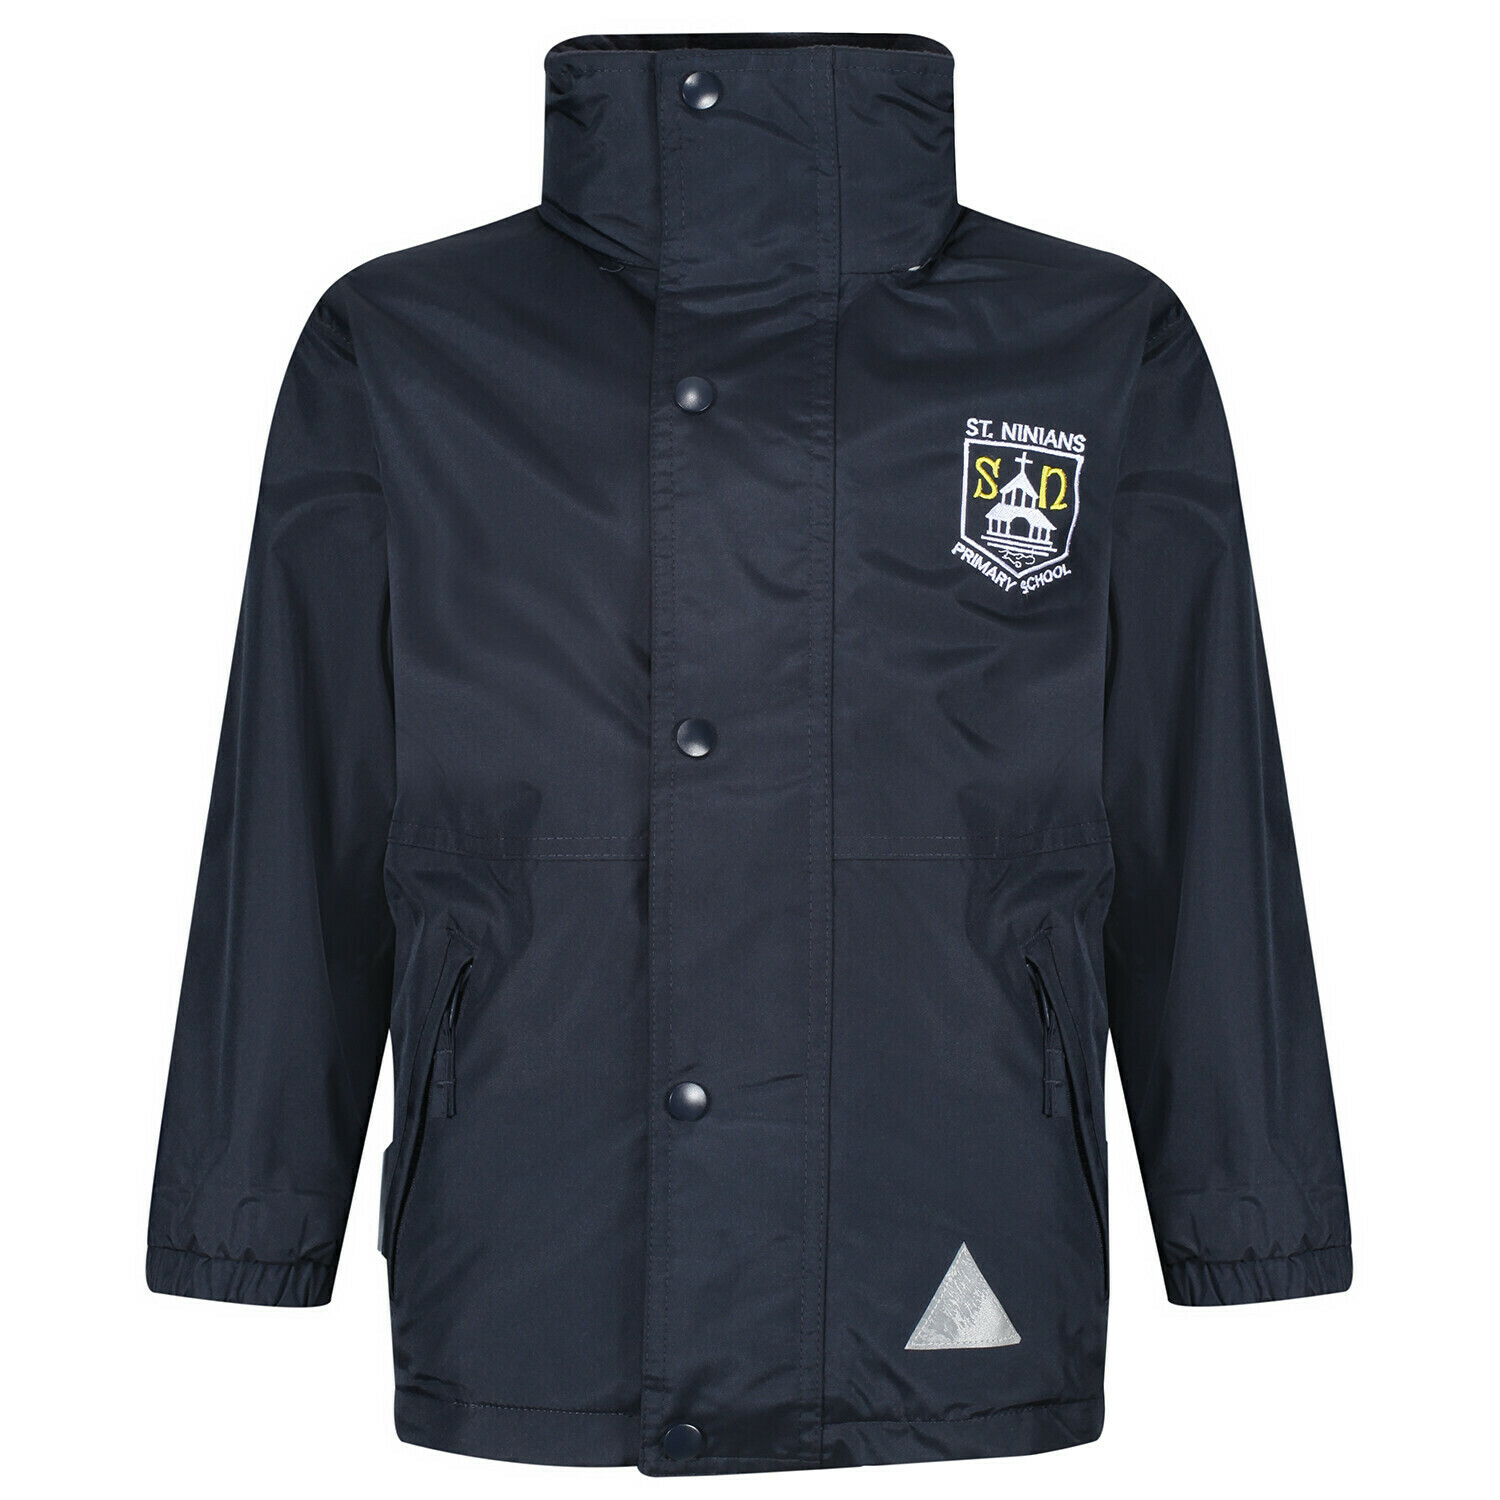 St Ninian's Primary Staff Heavy Rain Jacket (Fleece lined)